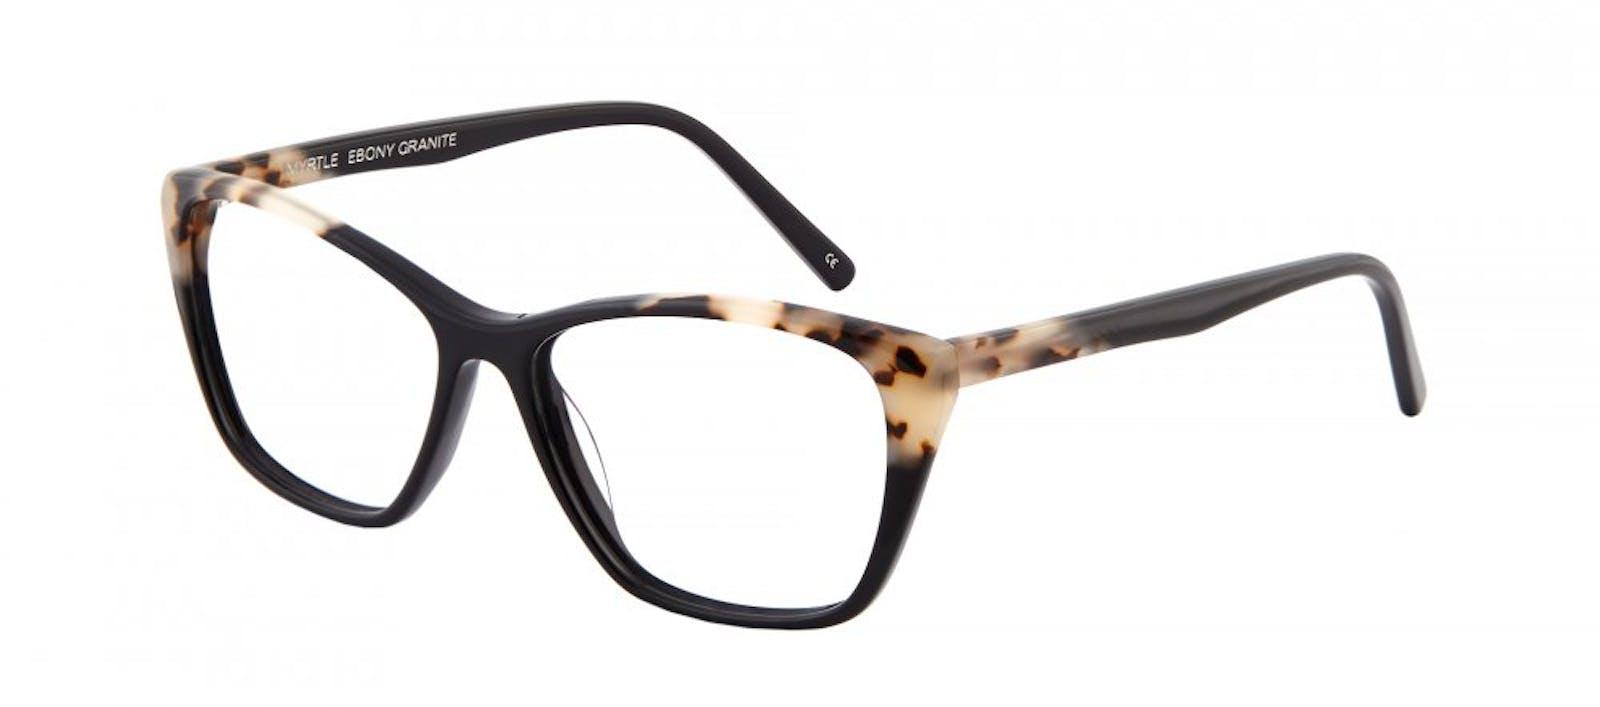 ef270e489d Affordable Fashion Glasses Cat Eye Rectangle Eyeglasses Women Myrtle Ebony  Granite Tilt